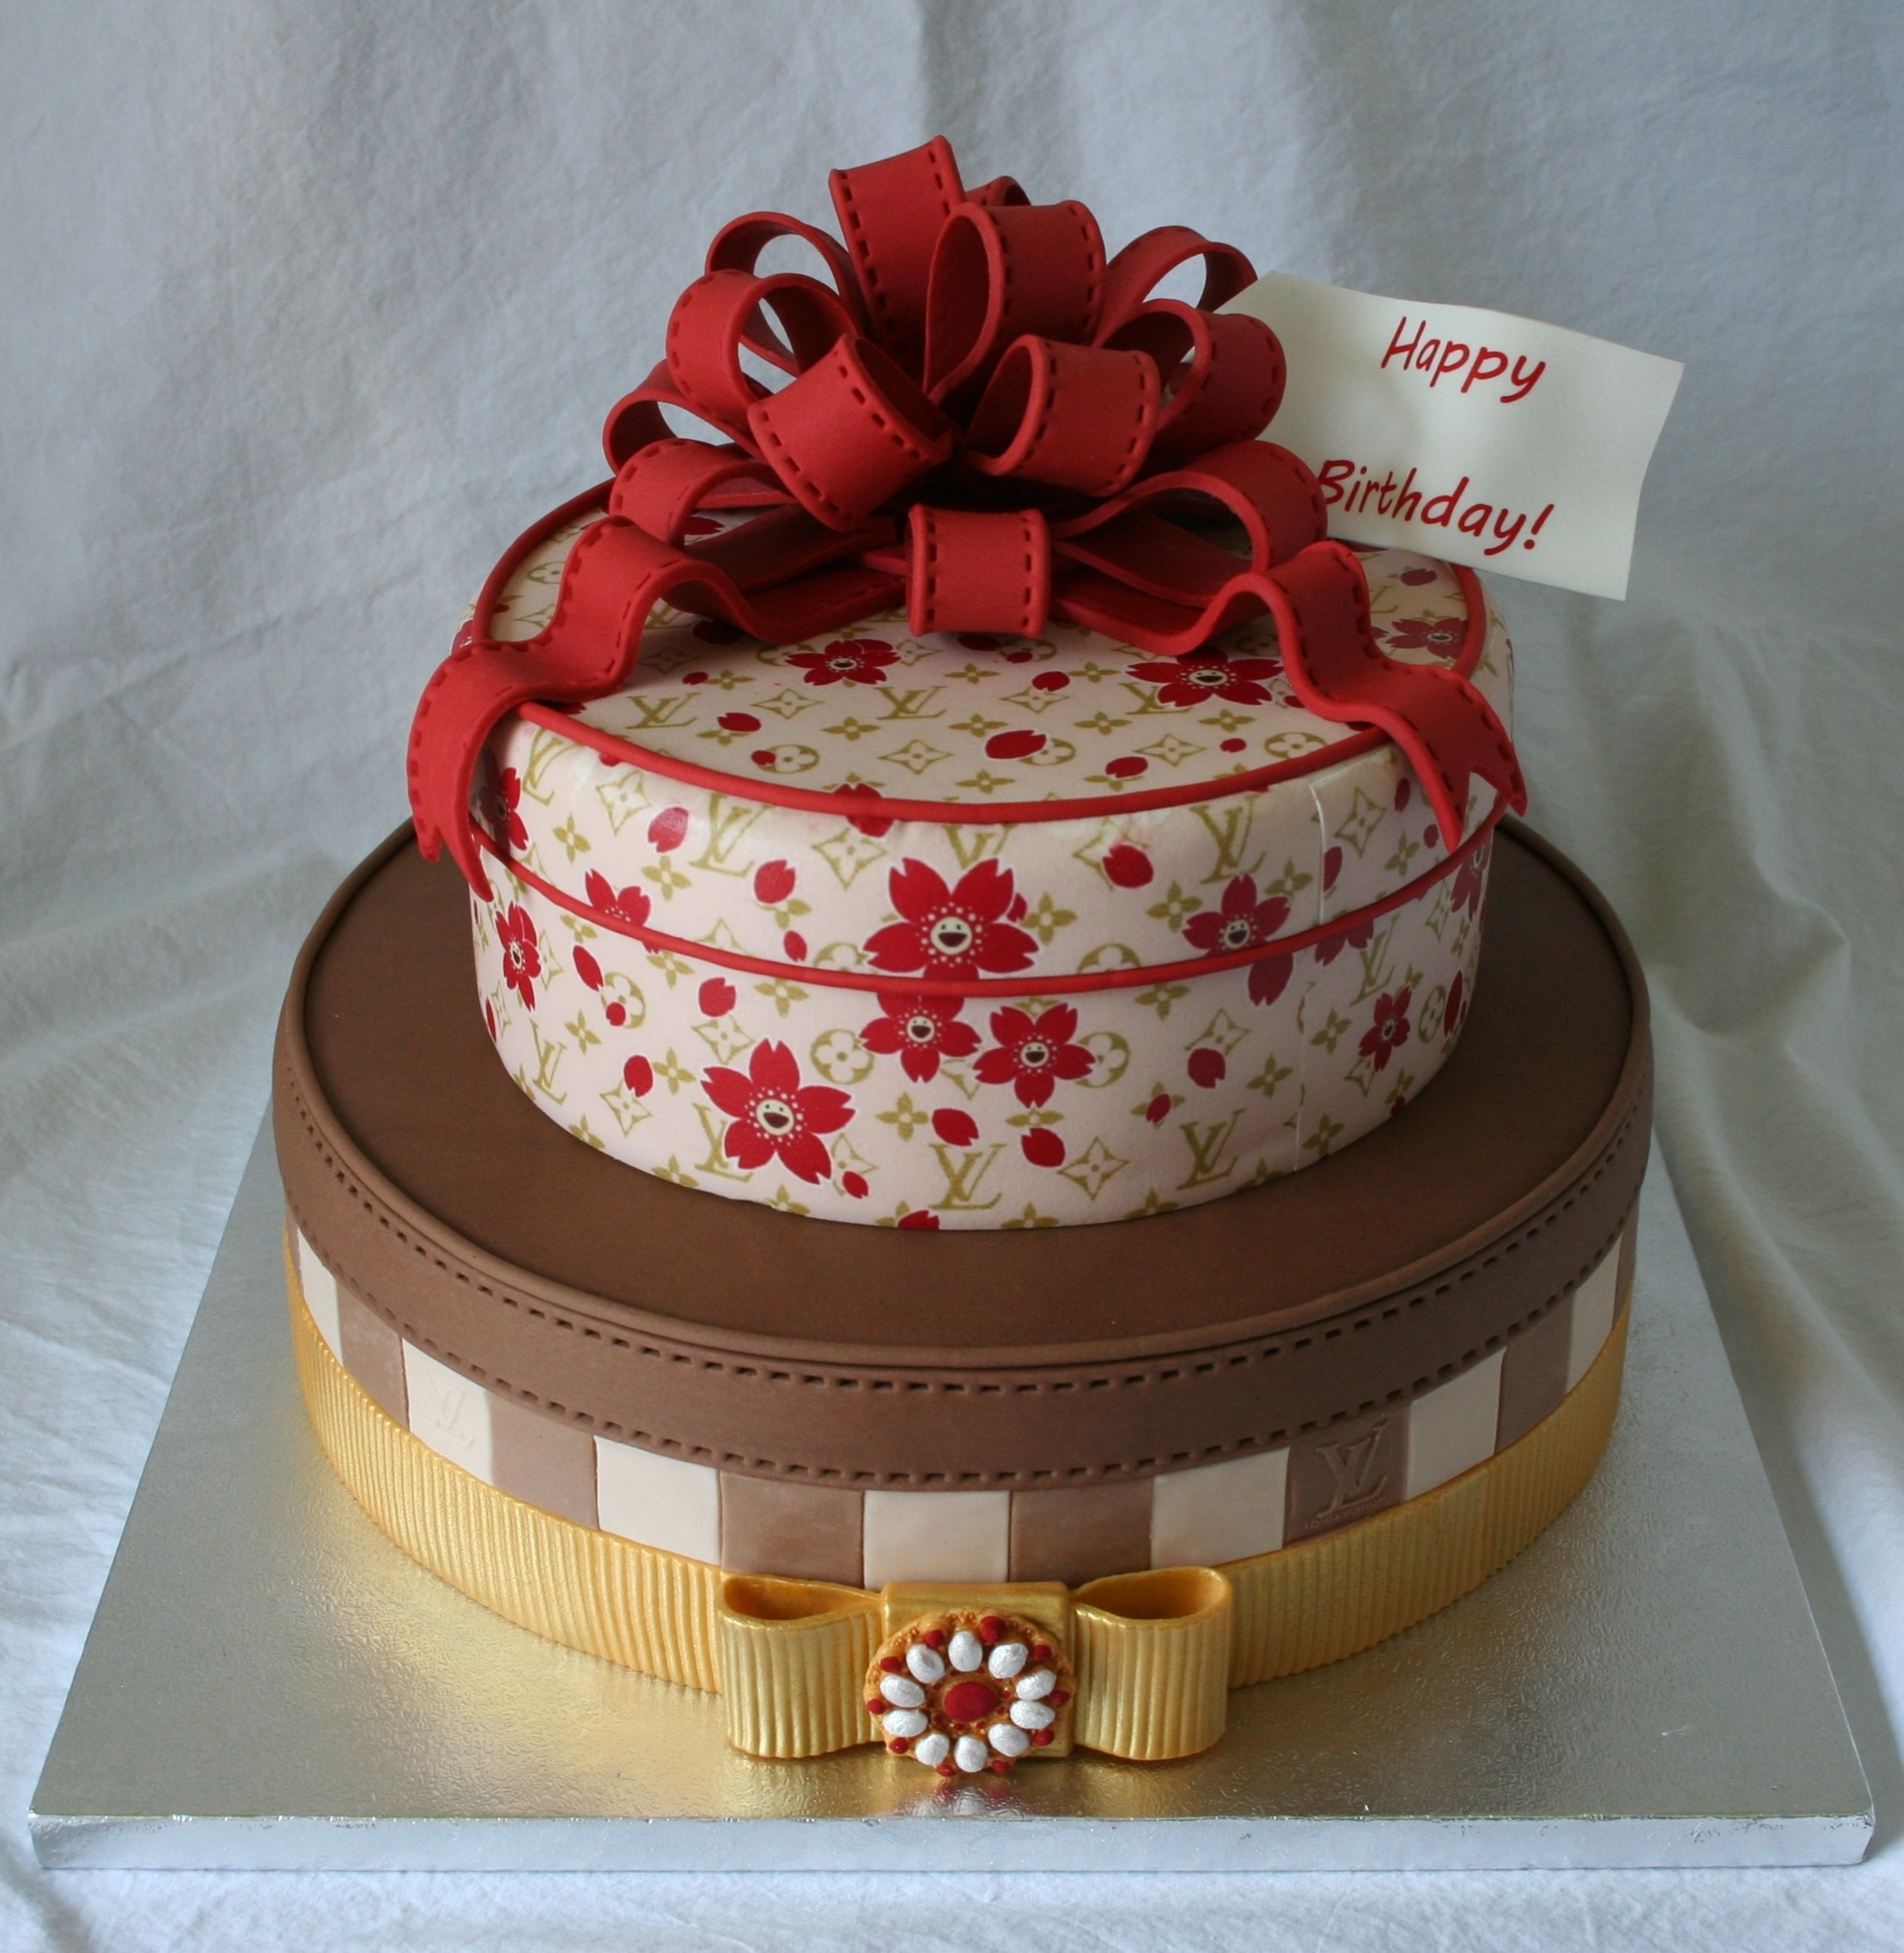 Red Velvet Louis Vuitton Cake With Cream Cheese Frosting